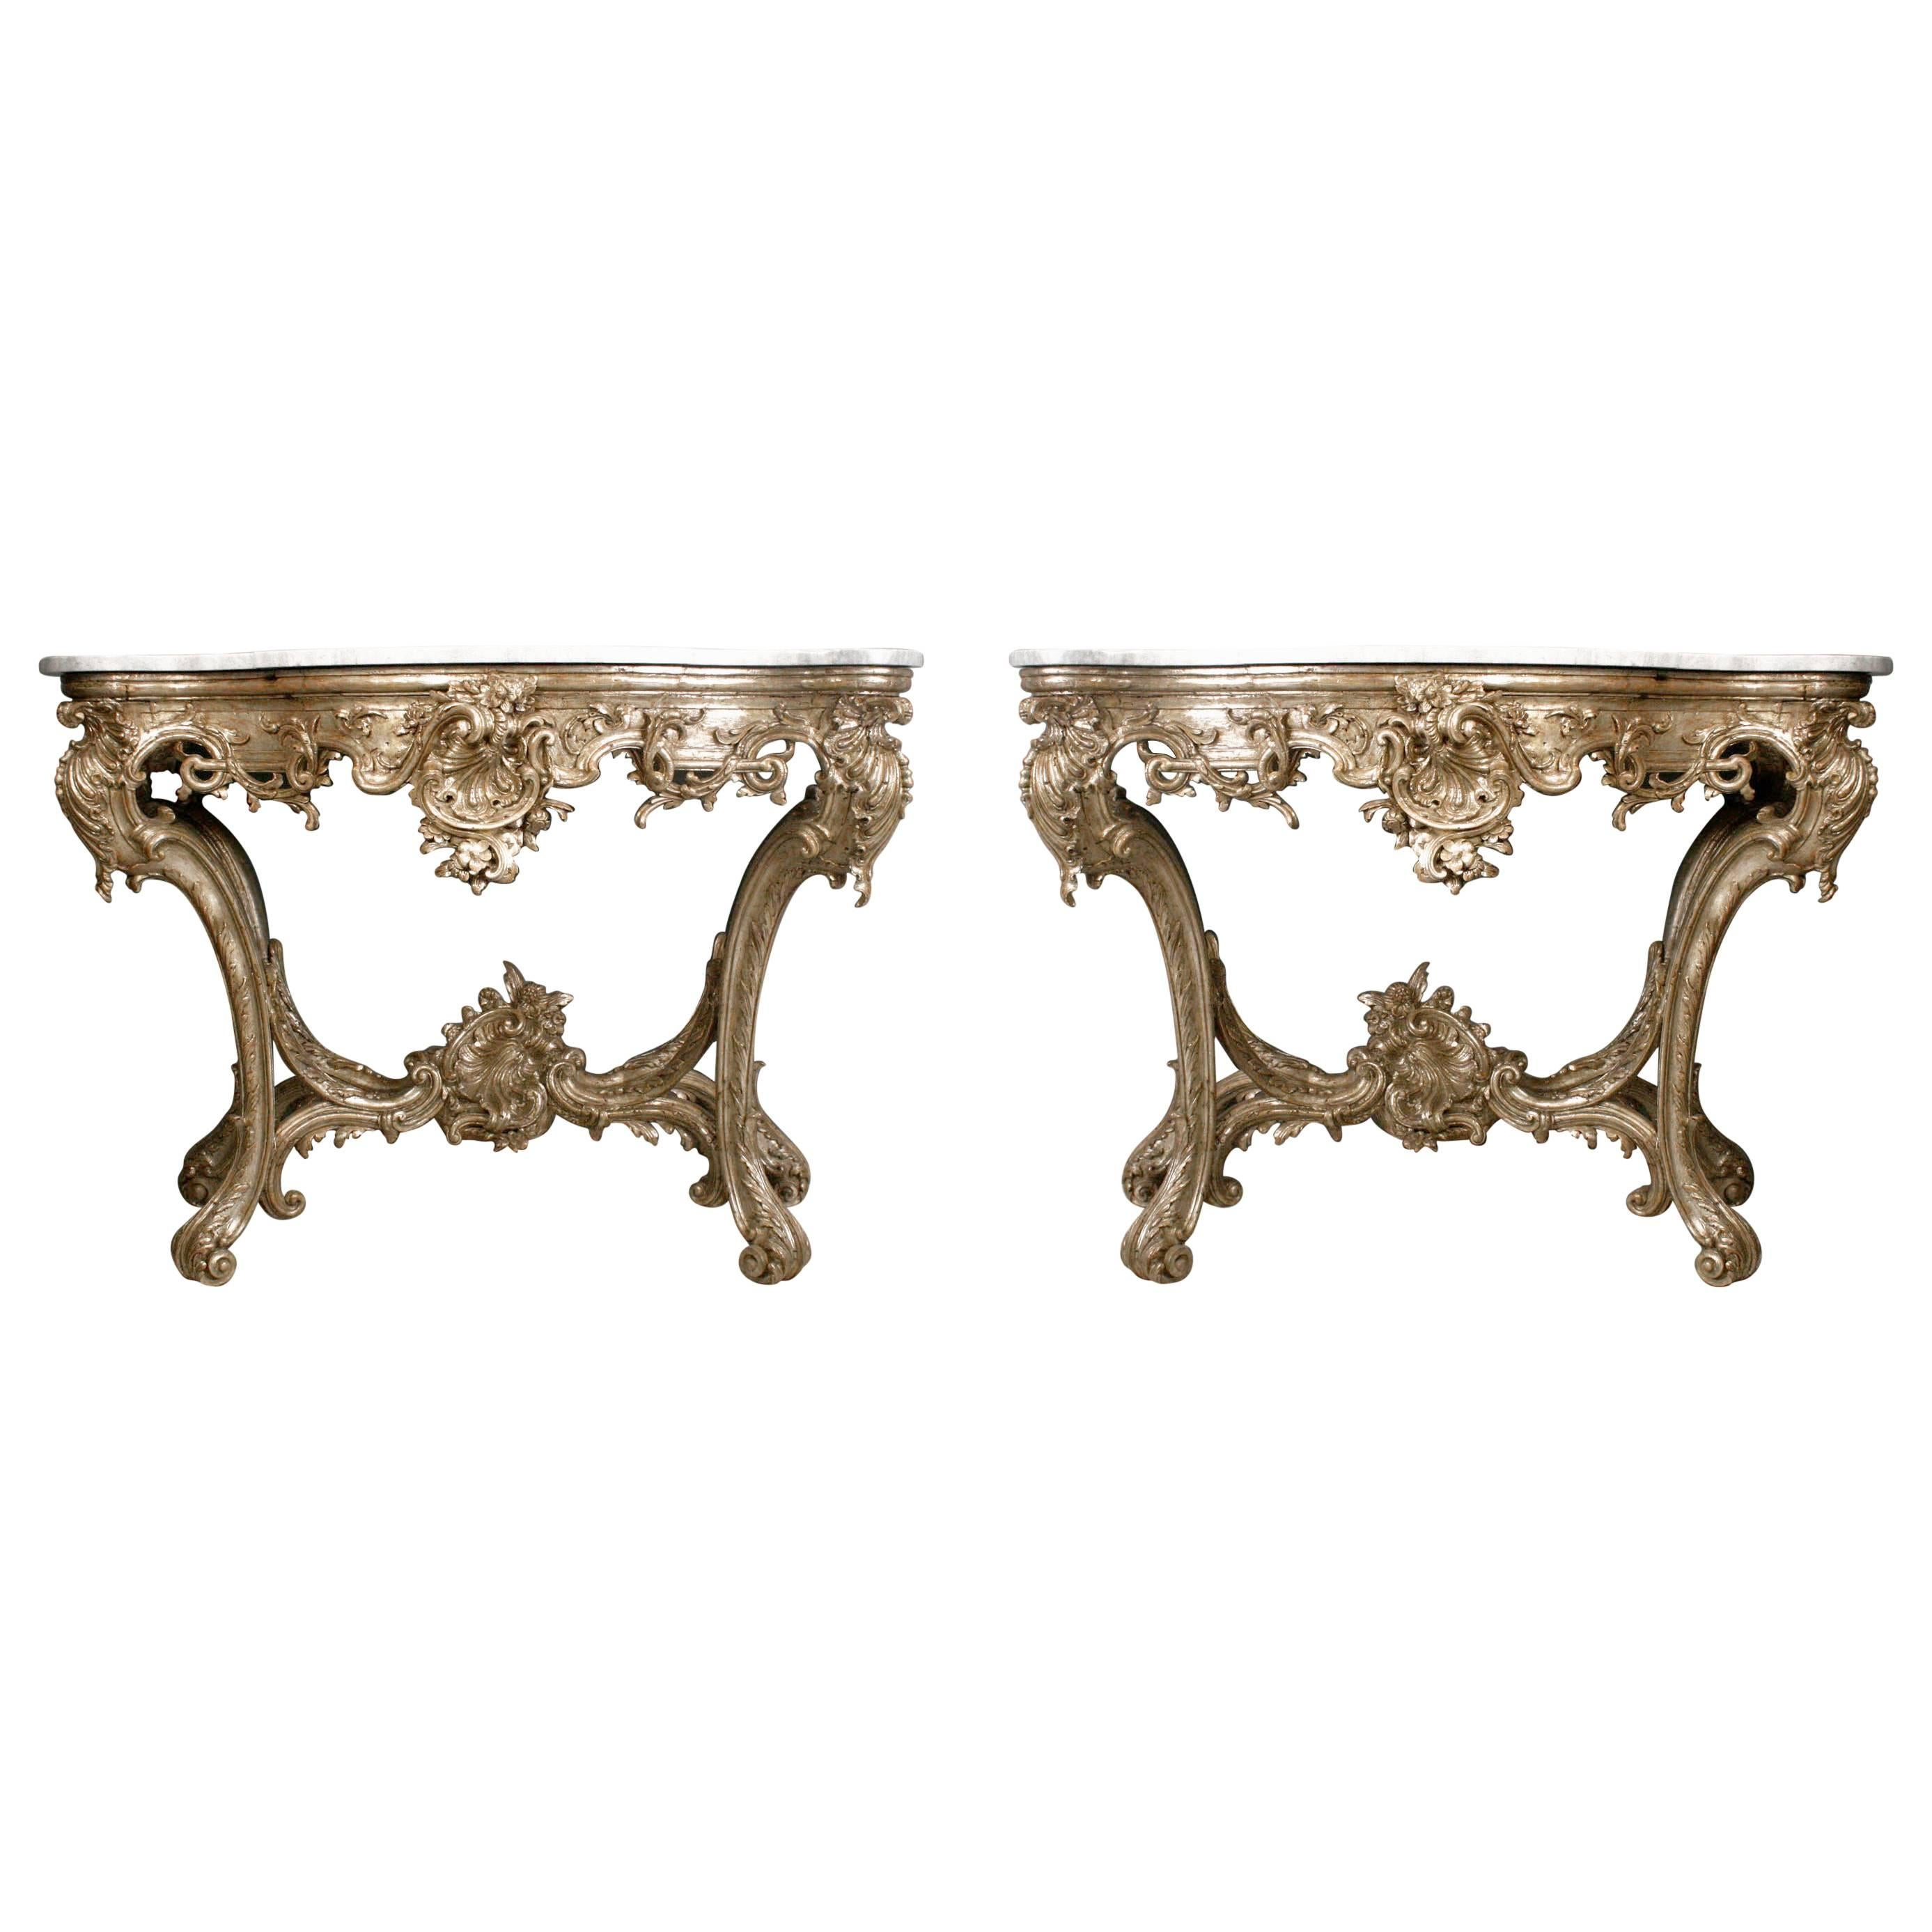 Superb Pair of 18th Century Italian Rococo Consoles with Marble Tops